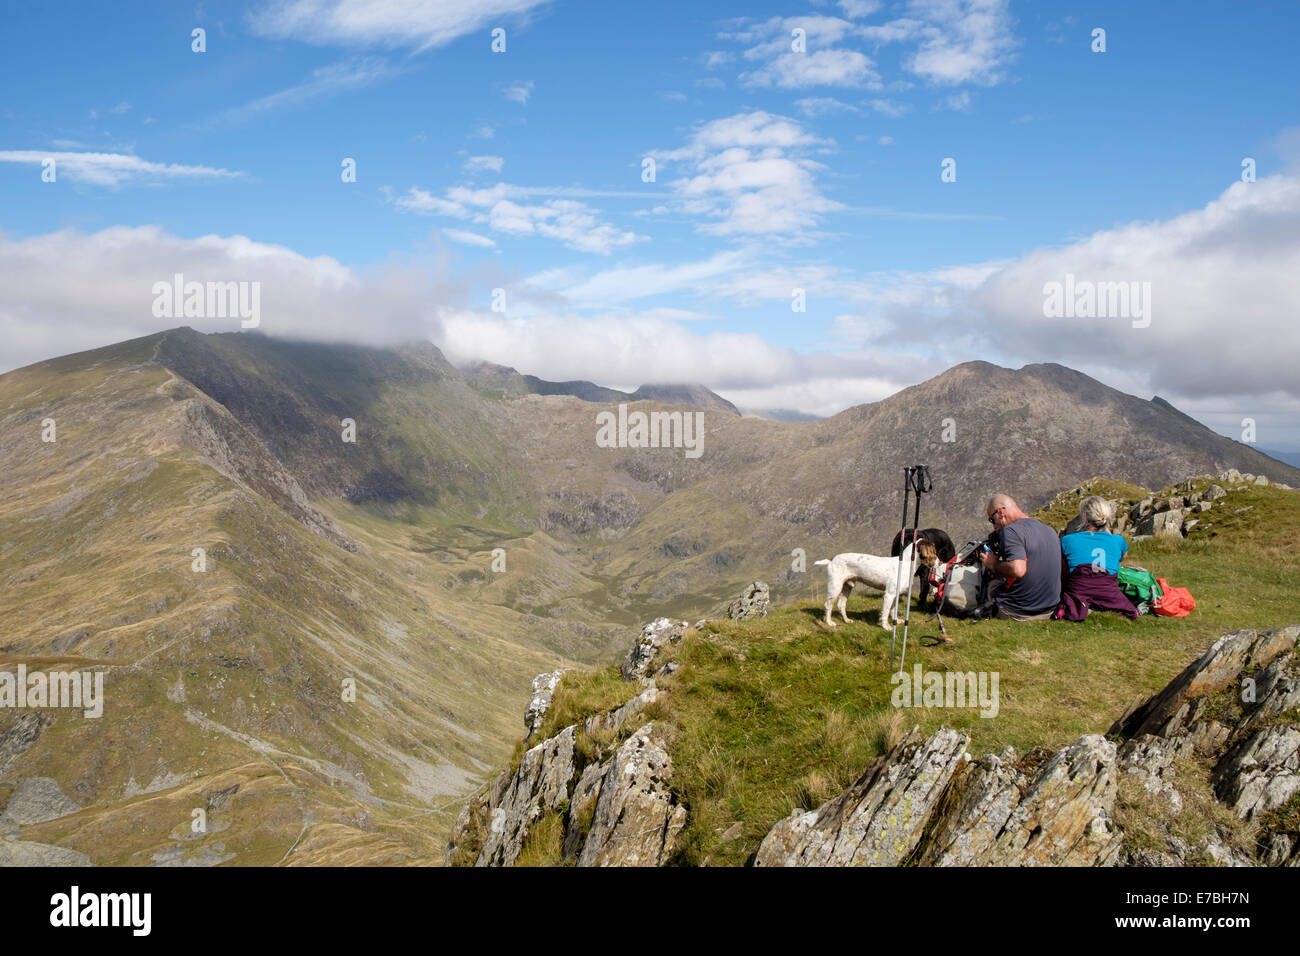 Walkers resting on Yr Aran summit with view across Cwm Llan to cloud topped Snowdon peak in mountains of Snowdonia - Stock Image